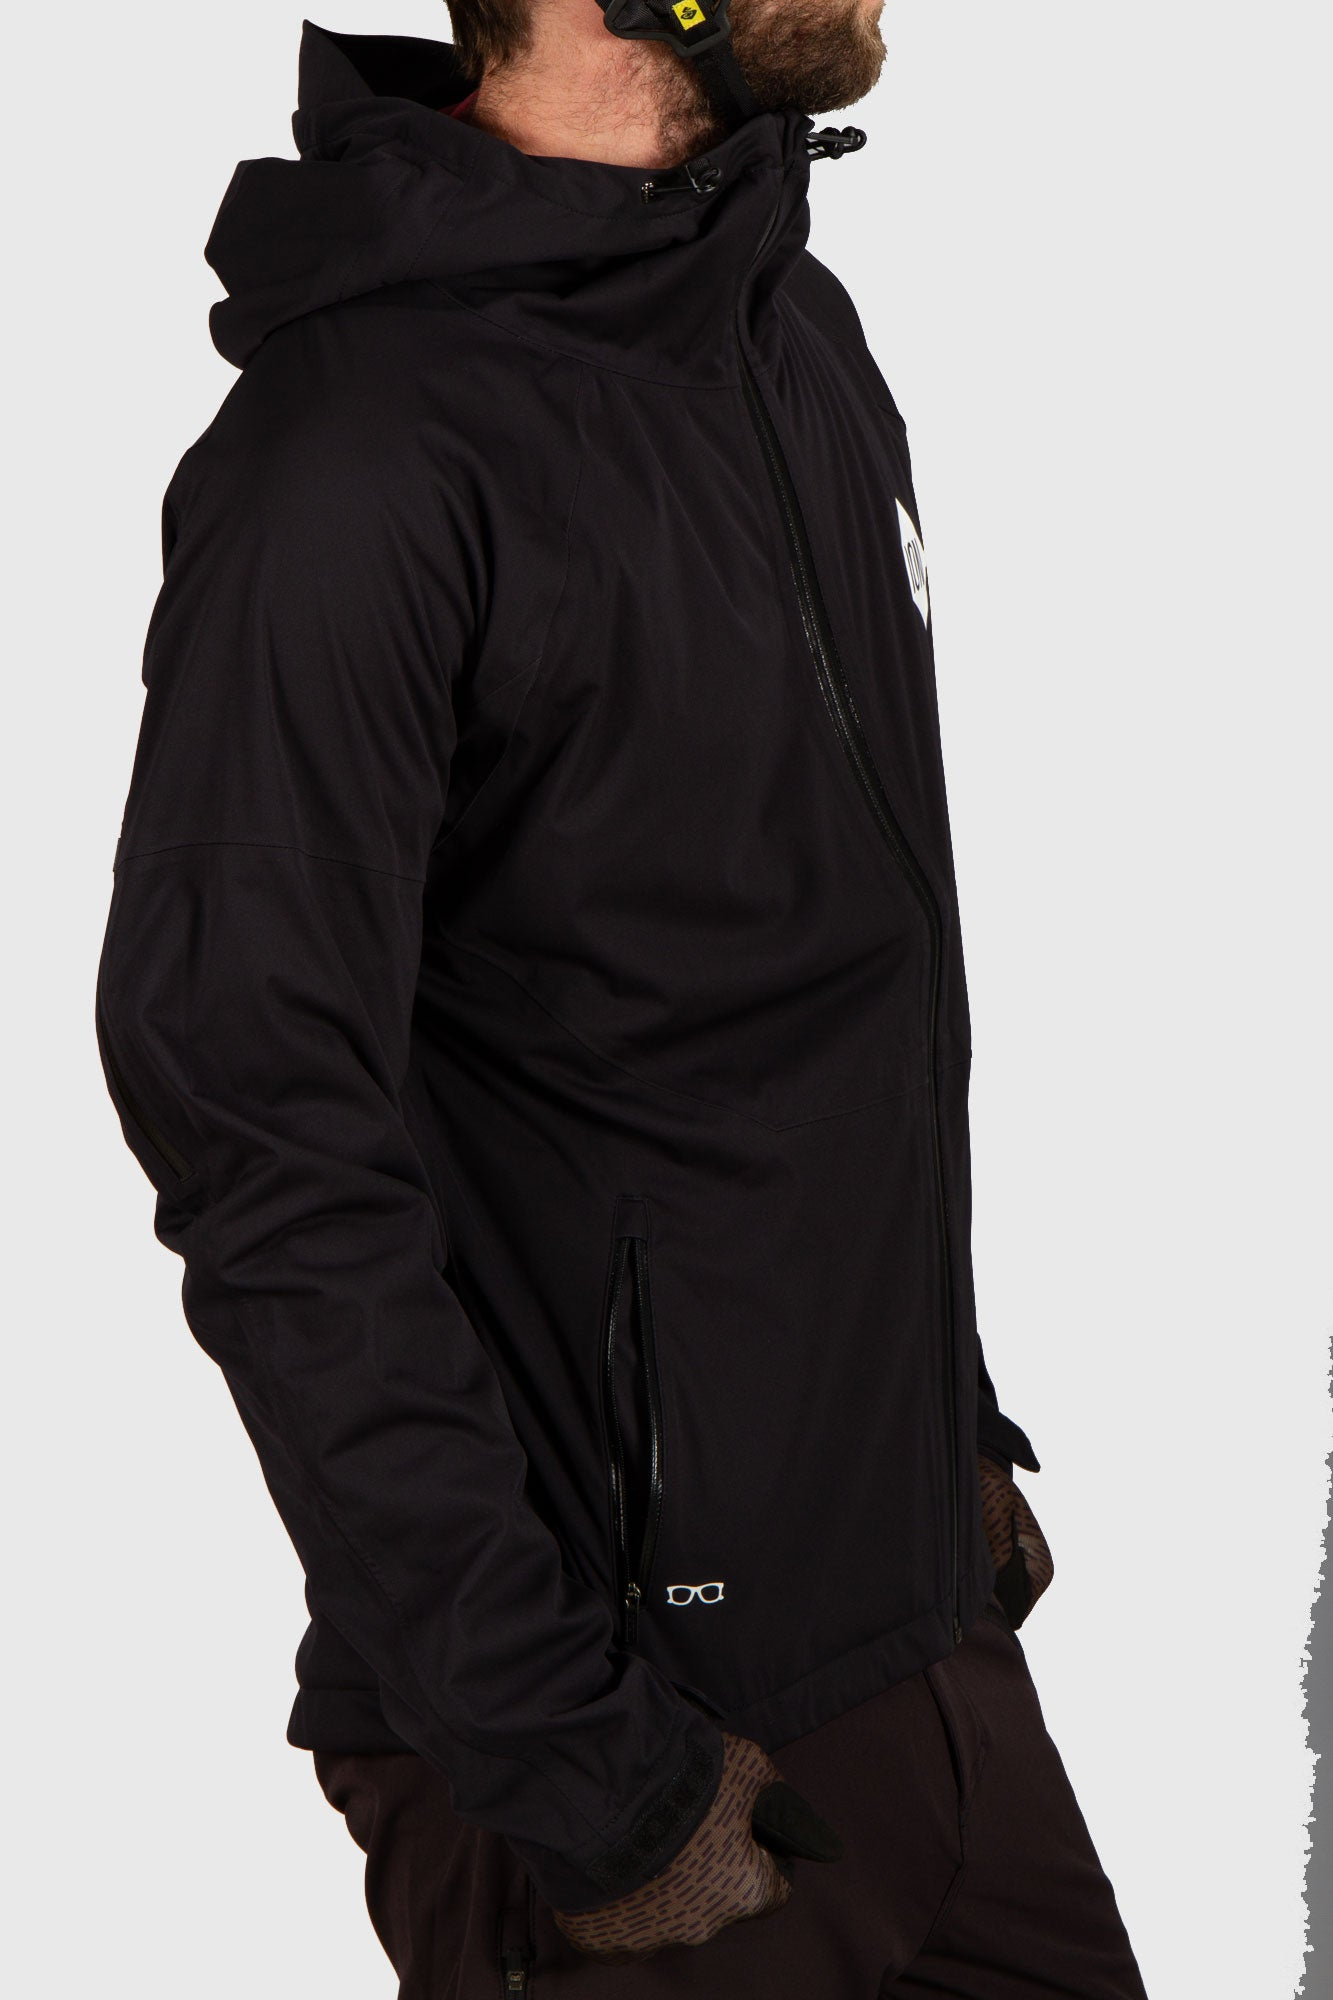 Ion Products Shelter jacket 3 Layer Waterproof Black – Stif